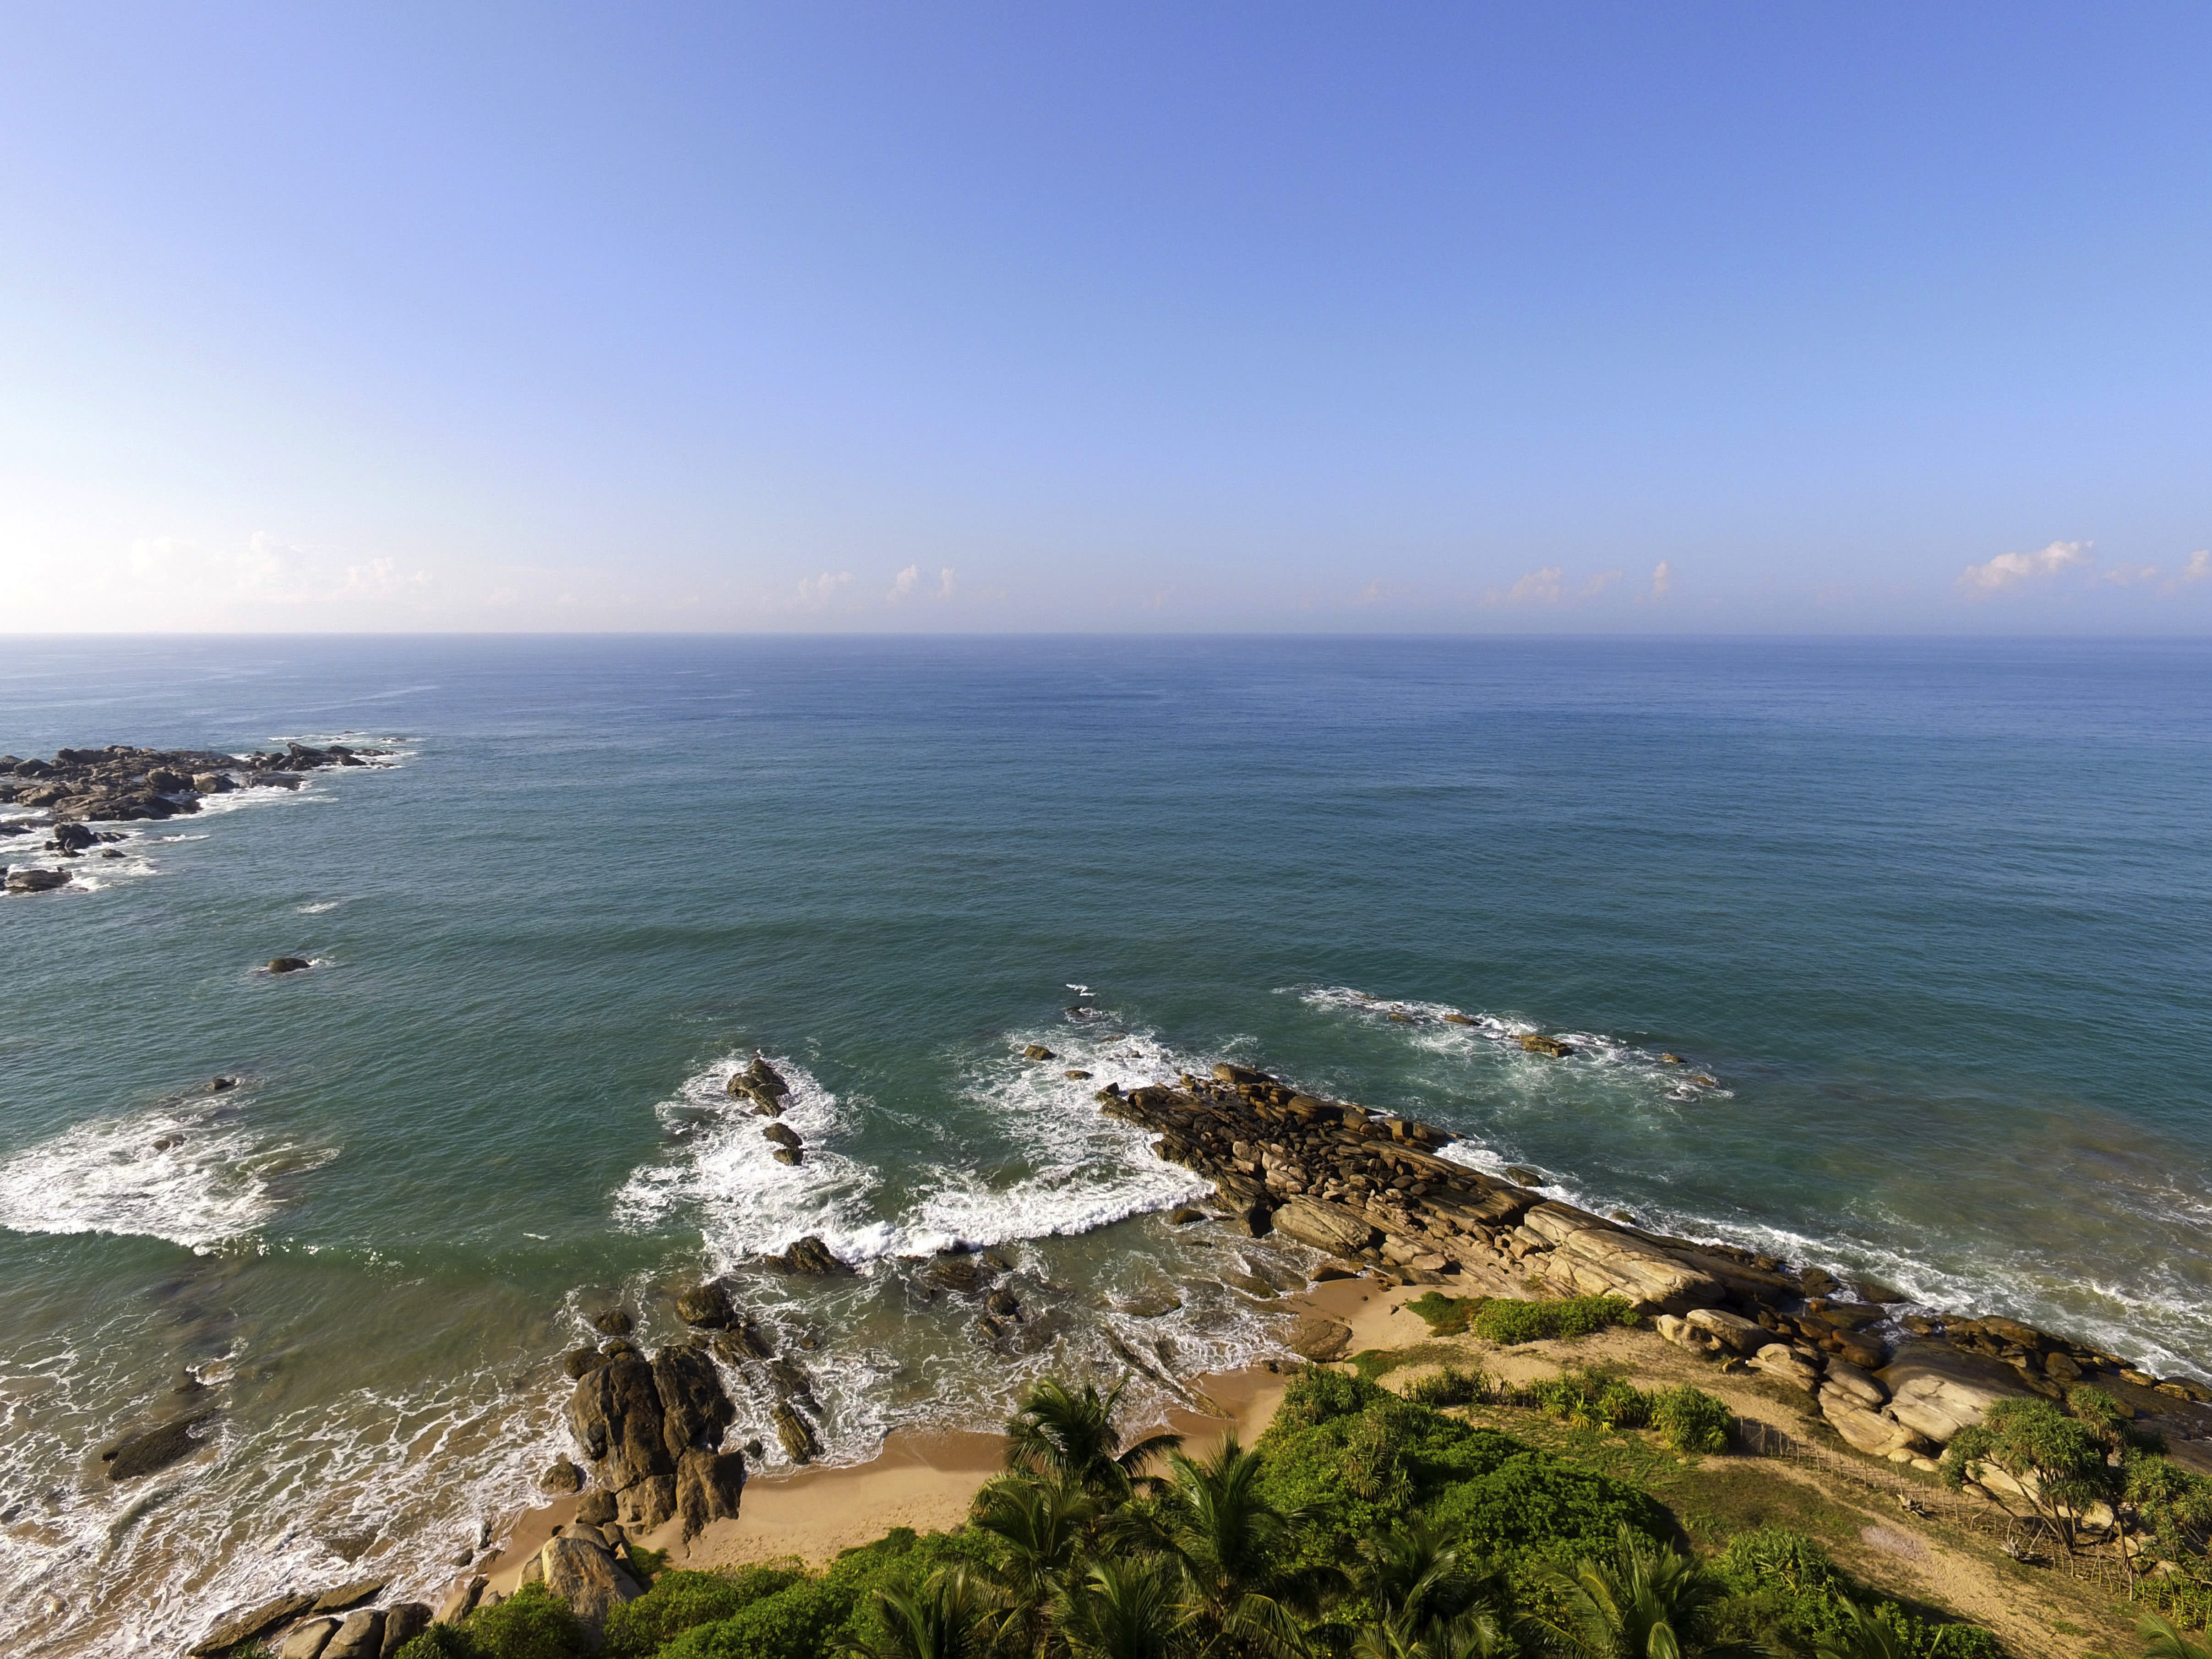 Natural beauty spots such as Kalametiya Beach, on the south coast of Sri Lanka, drew entrepreneur Lahiru Pathmalal back to his home country.